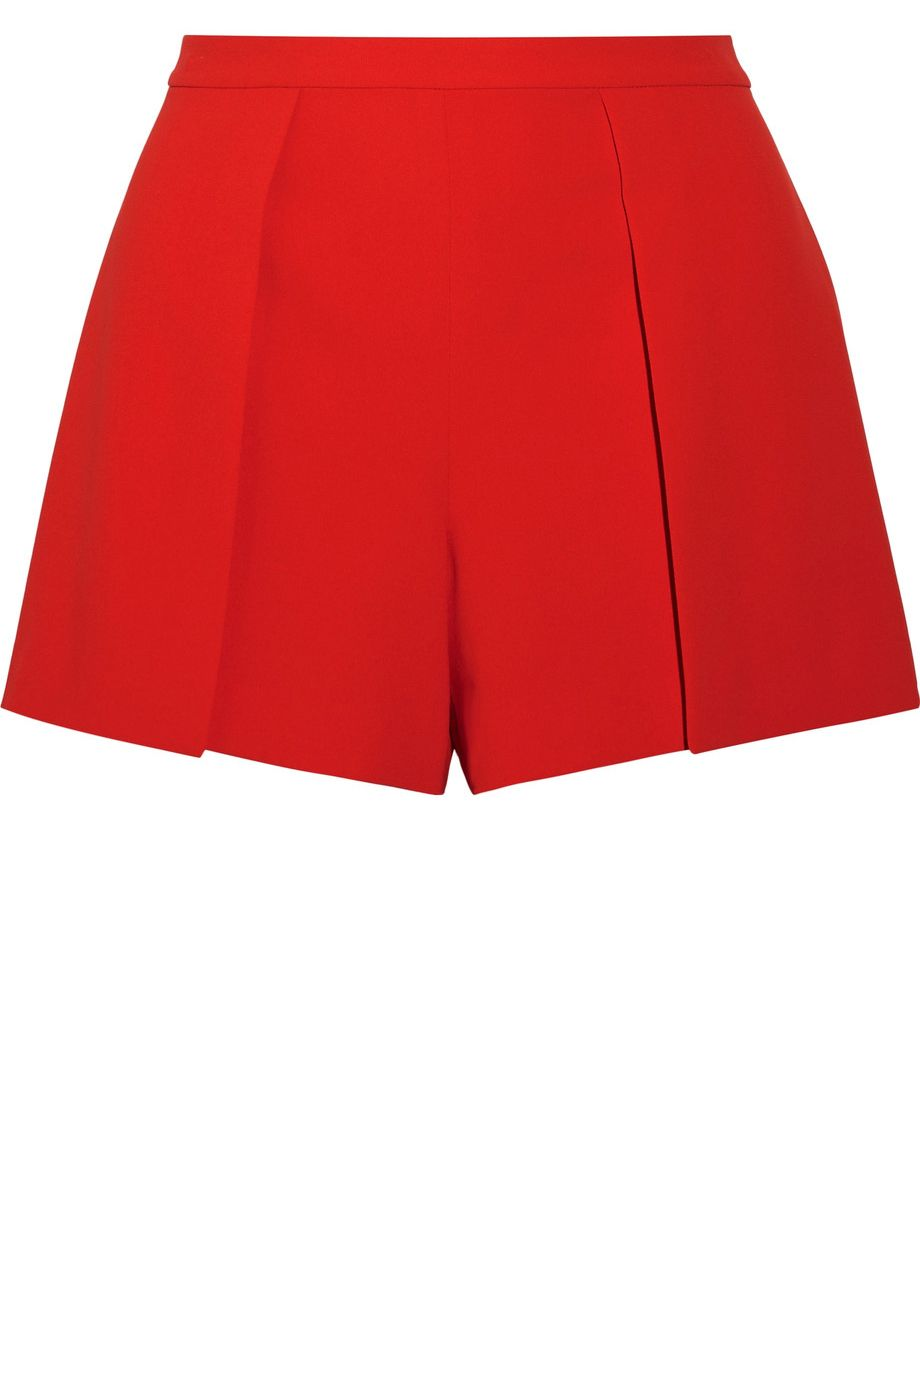 Red Shorts for Summer - Best Red Shorts